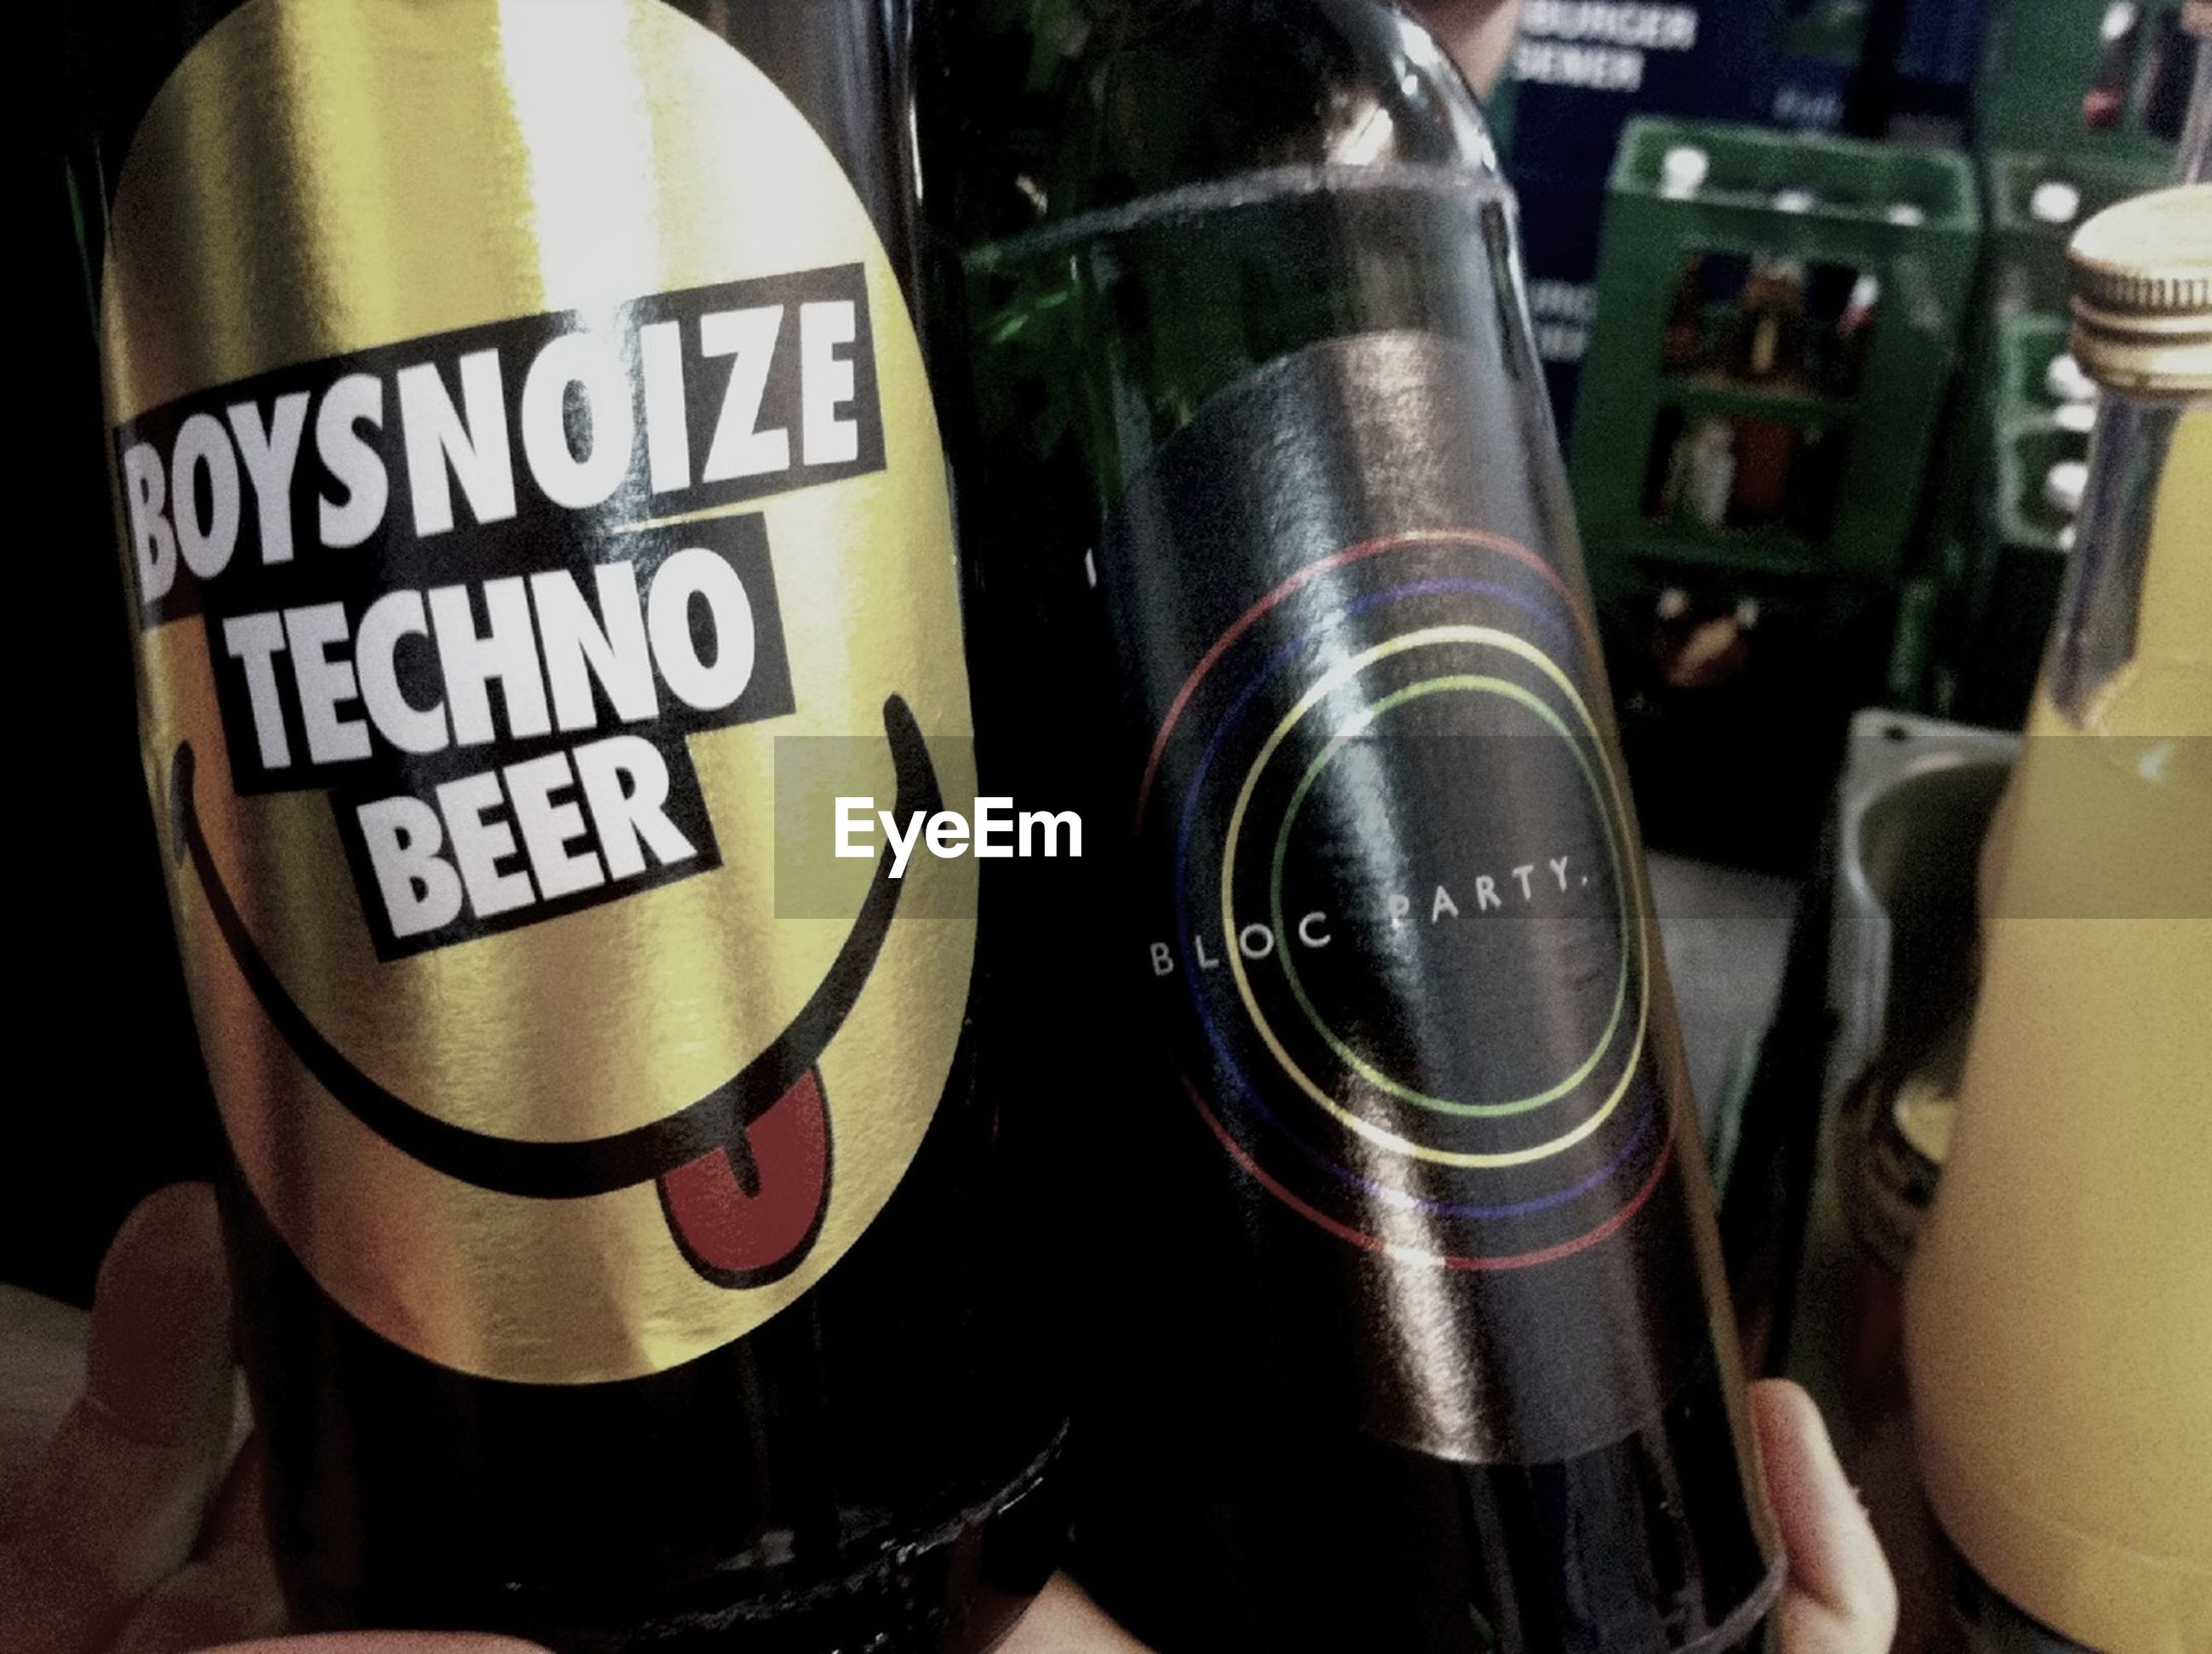 indoors, text, communication, close-up, western script, drink, food and drink, refreshment, number, technology, focus on foreground, part of, alcohol, bottle, glass - material, high angle view, men